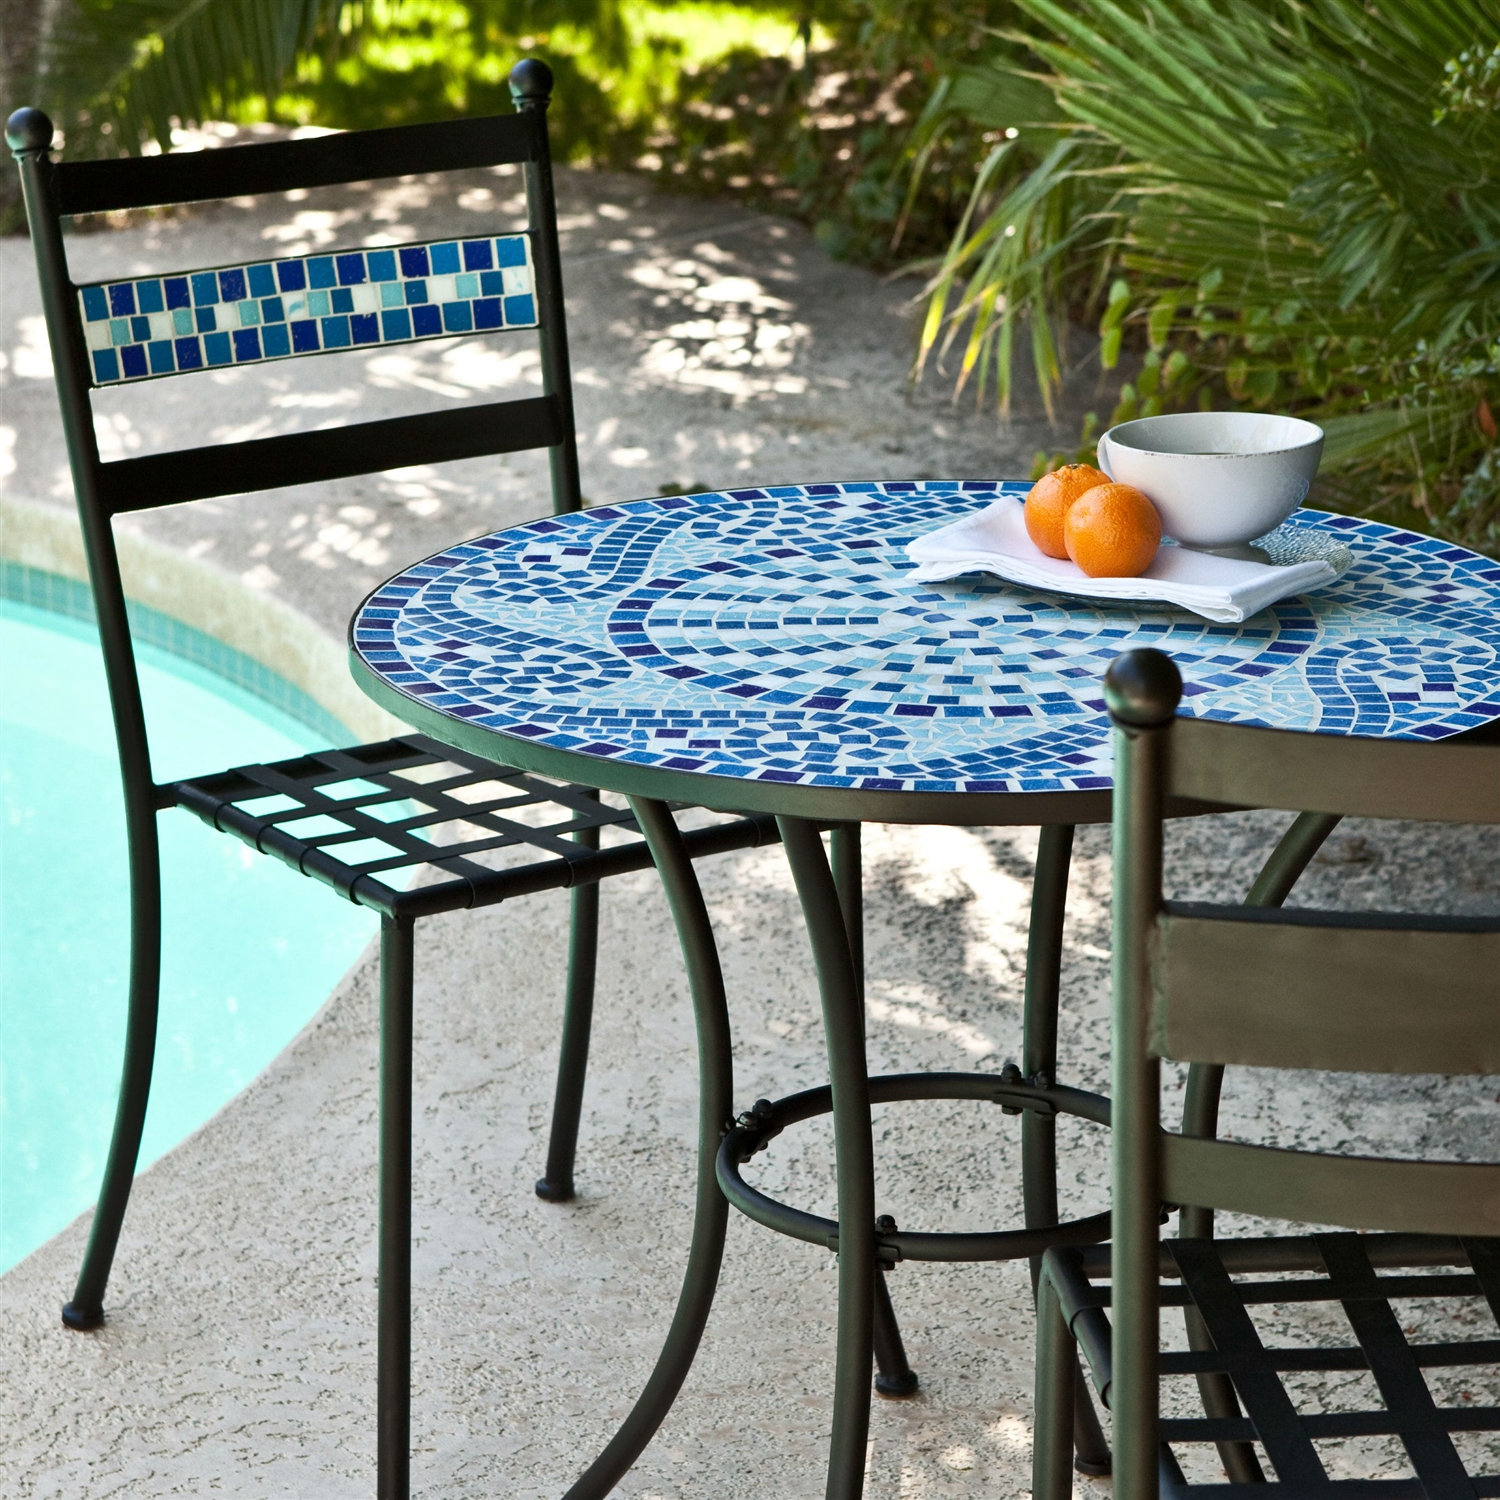 Delicieux Outdoor 3 Piece Aqua Blue Mosaic Tiles Patio Furniture Bistro Set